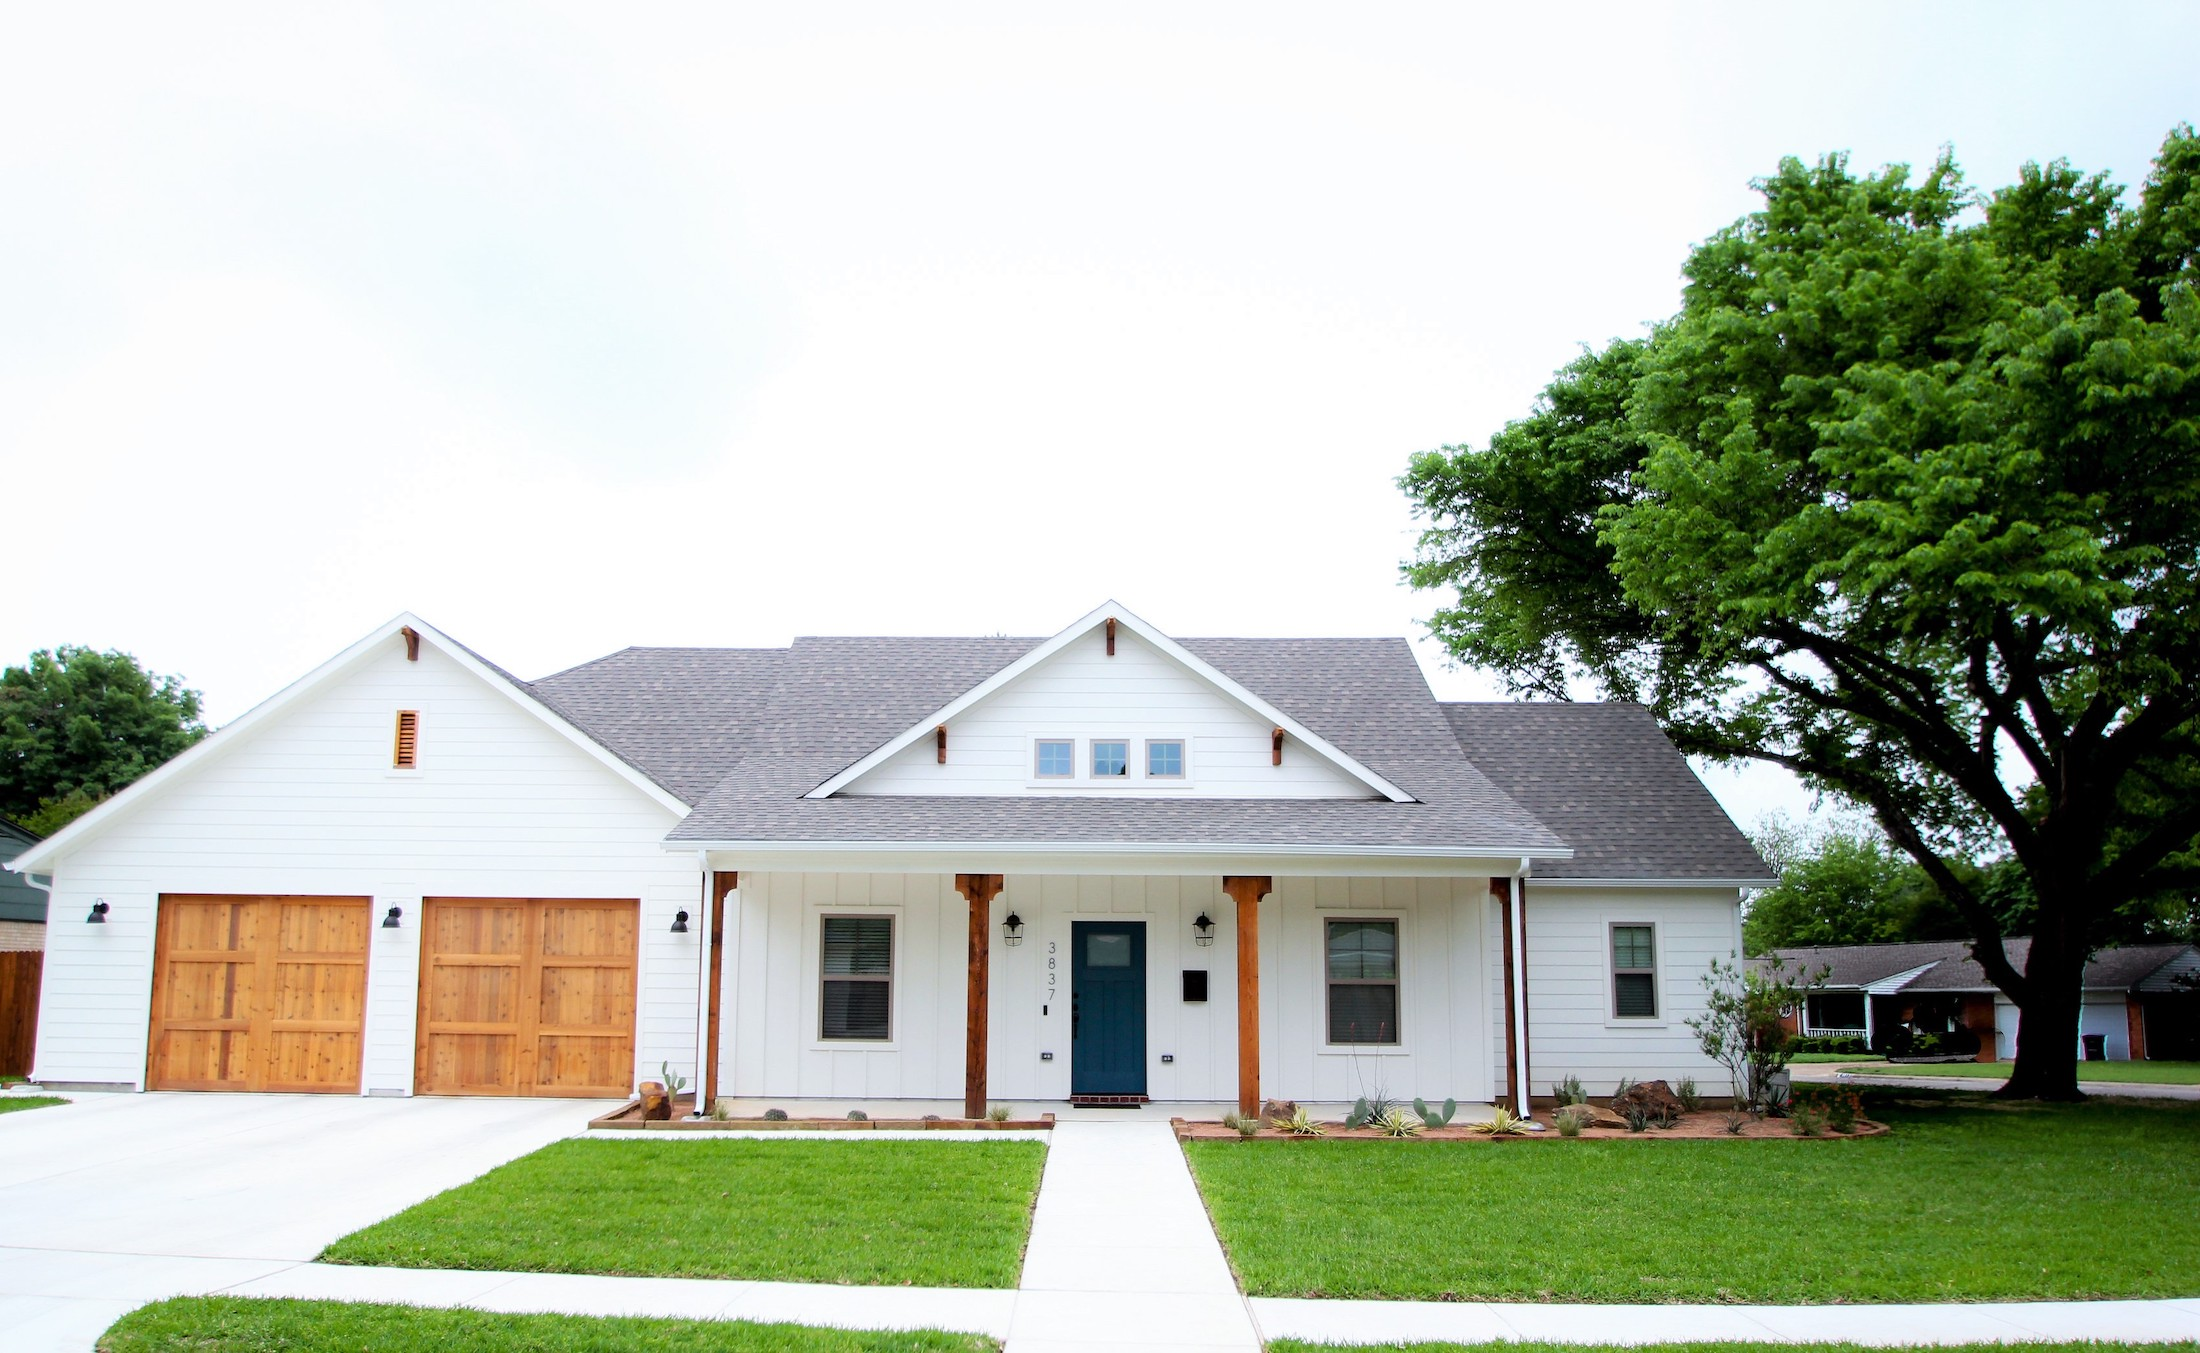 Exterior Home Design (North Texas): white farmhouse from front